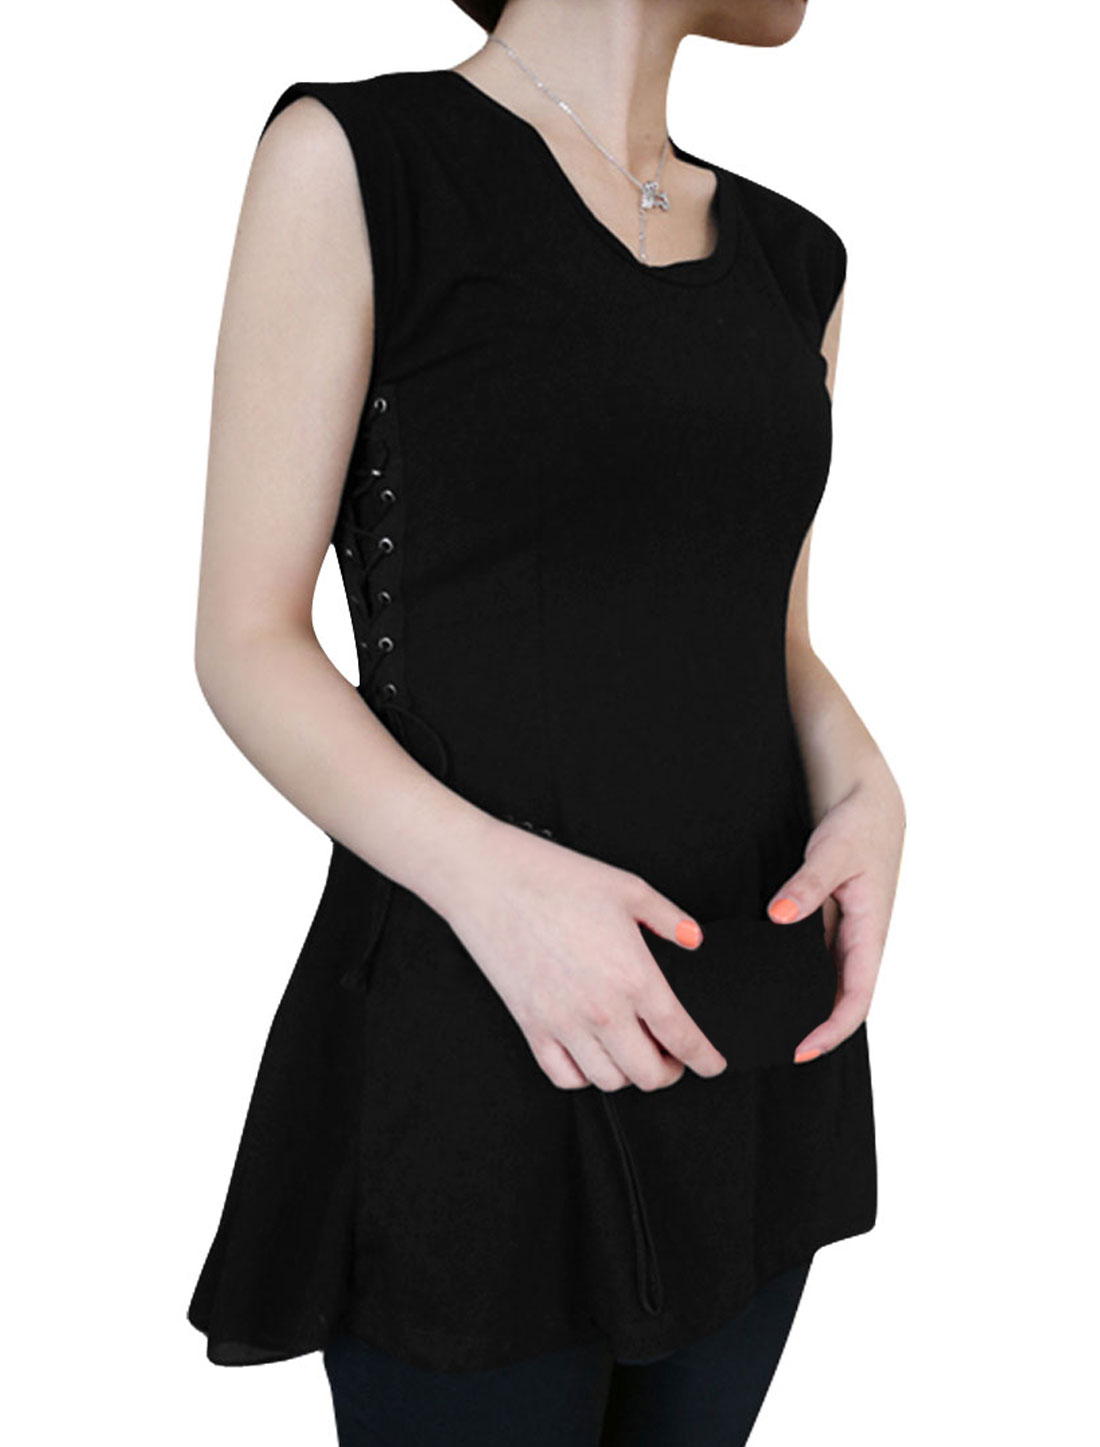 Women Two Detachable Straps Round Neck Sleeveless Style Tunic Shirt Black S